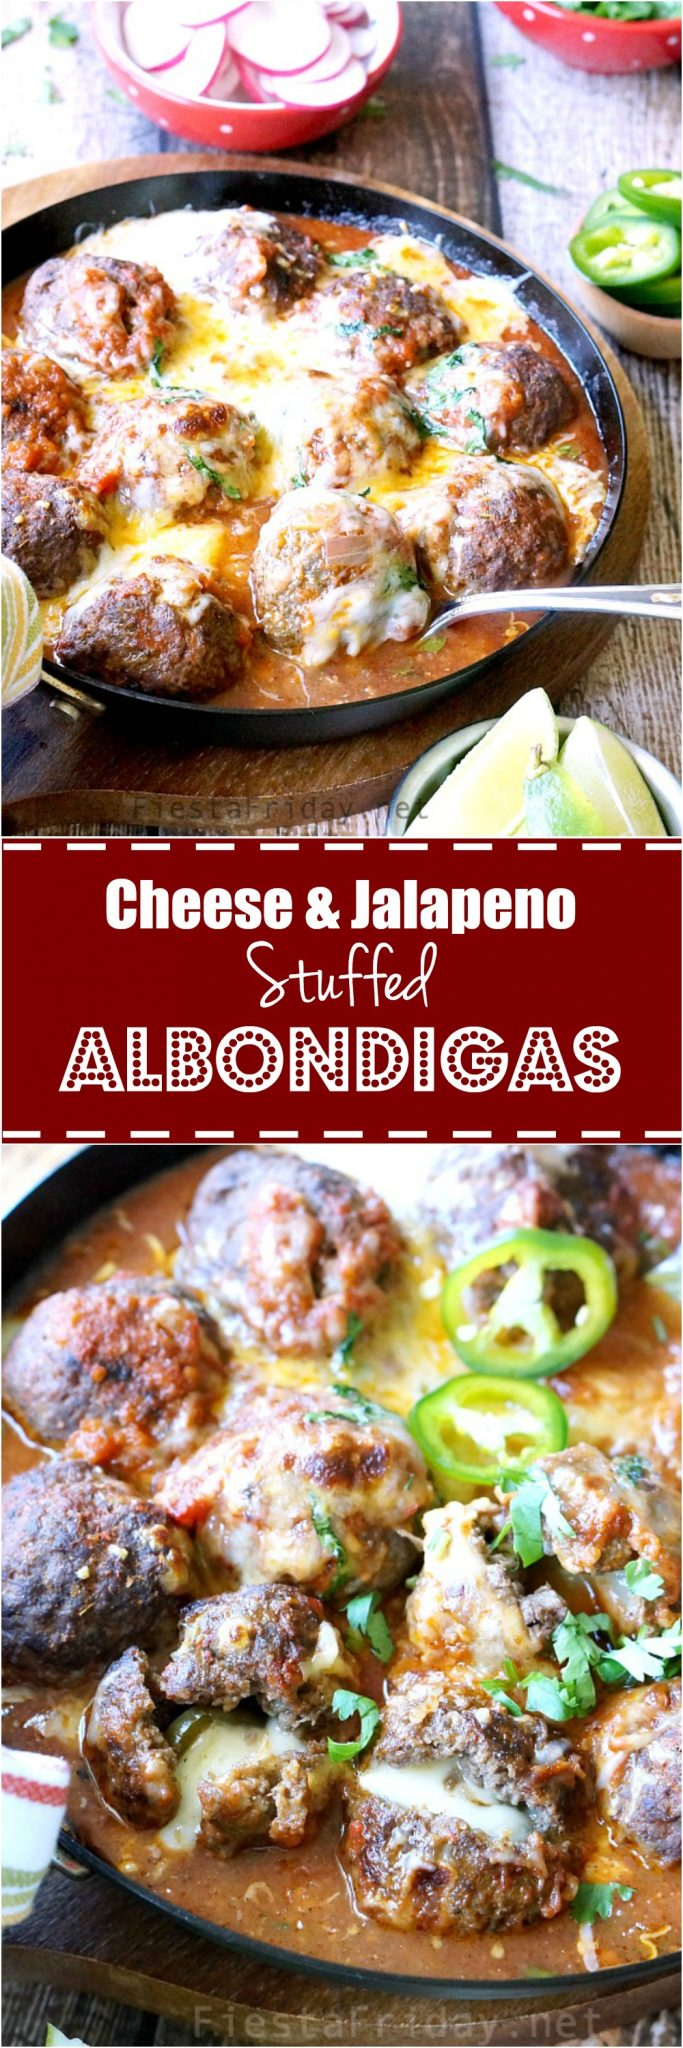 These albóndigas (Mexican Meatballs) are stuffed with jack cheese and pickled jalapeños, then simmered in roasted poblano tomato sauce. Can I hear you say Olé?! #albondigas #meatballs #cincodemayo #mexicanfood